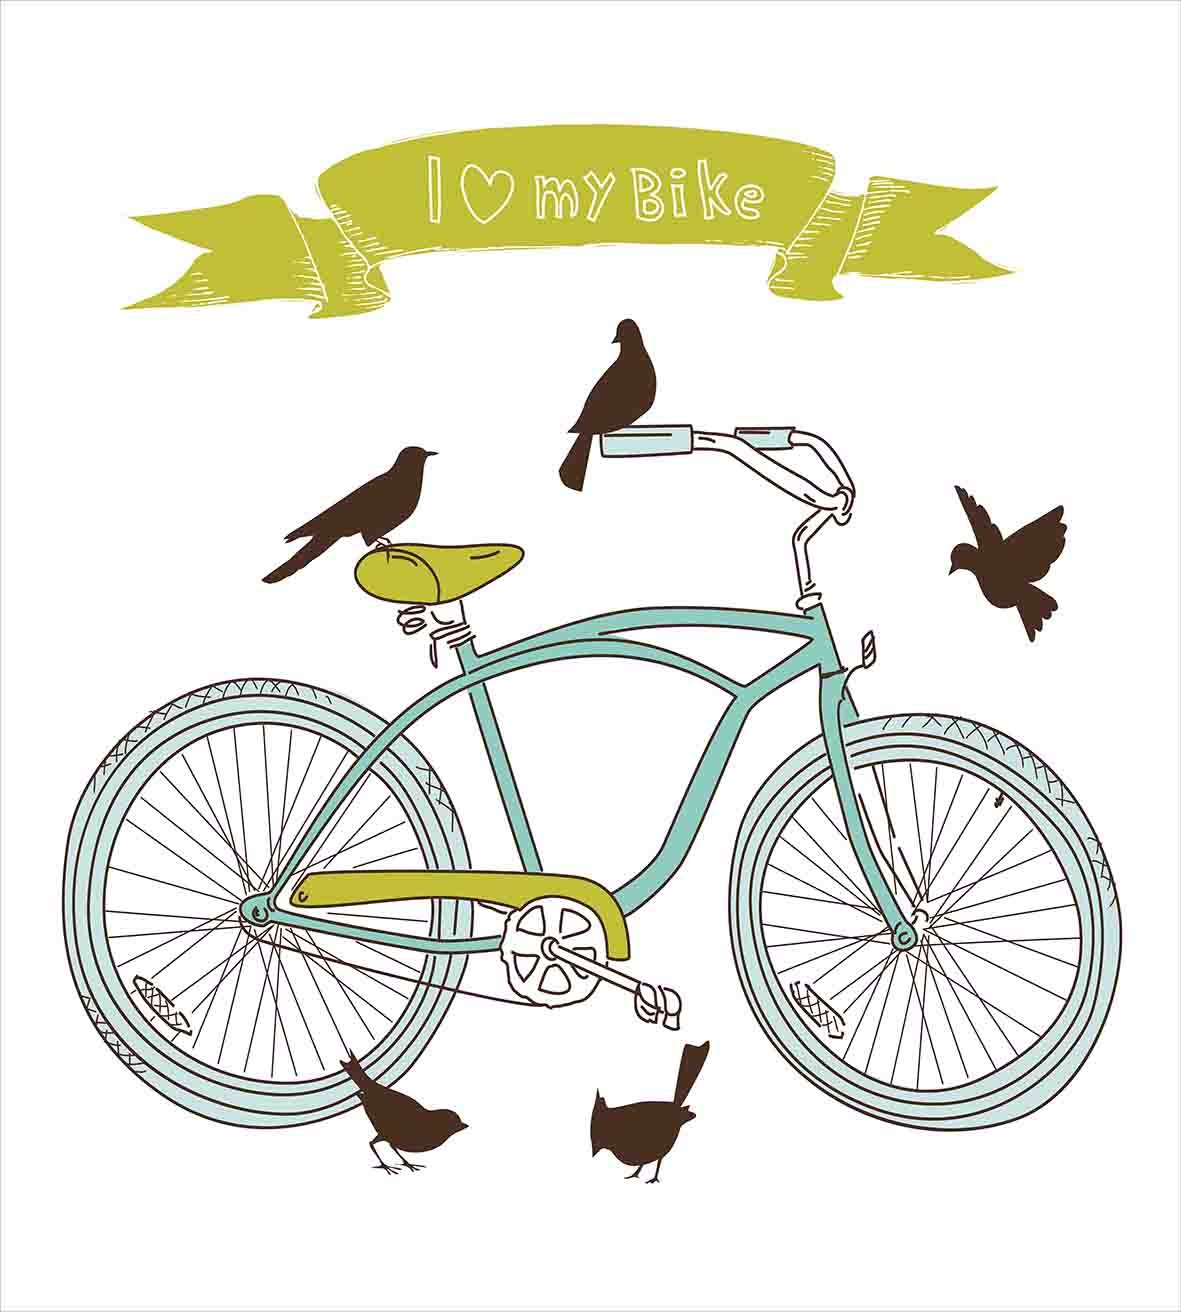 Bicycle Duvet Cover Set King Size by Ambesonne, I Love My Bike Concept with Birds on the Seat Cruisers Basic Vehicle Simplistic Art, Decorative 3 Piece Bedding Set with 2 Pillow Shams, Green Blue by Ambesonne (Image #2)